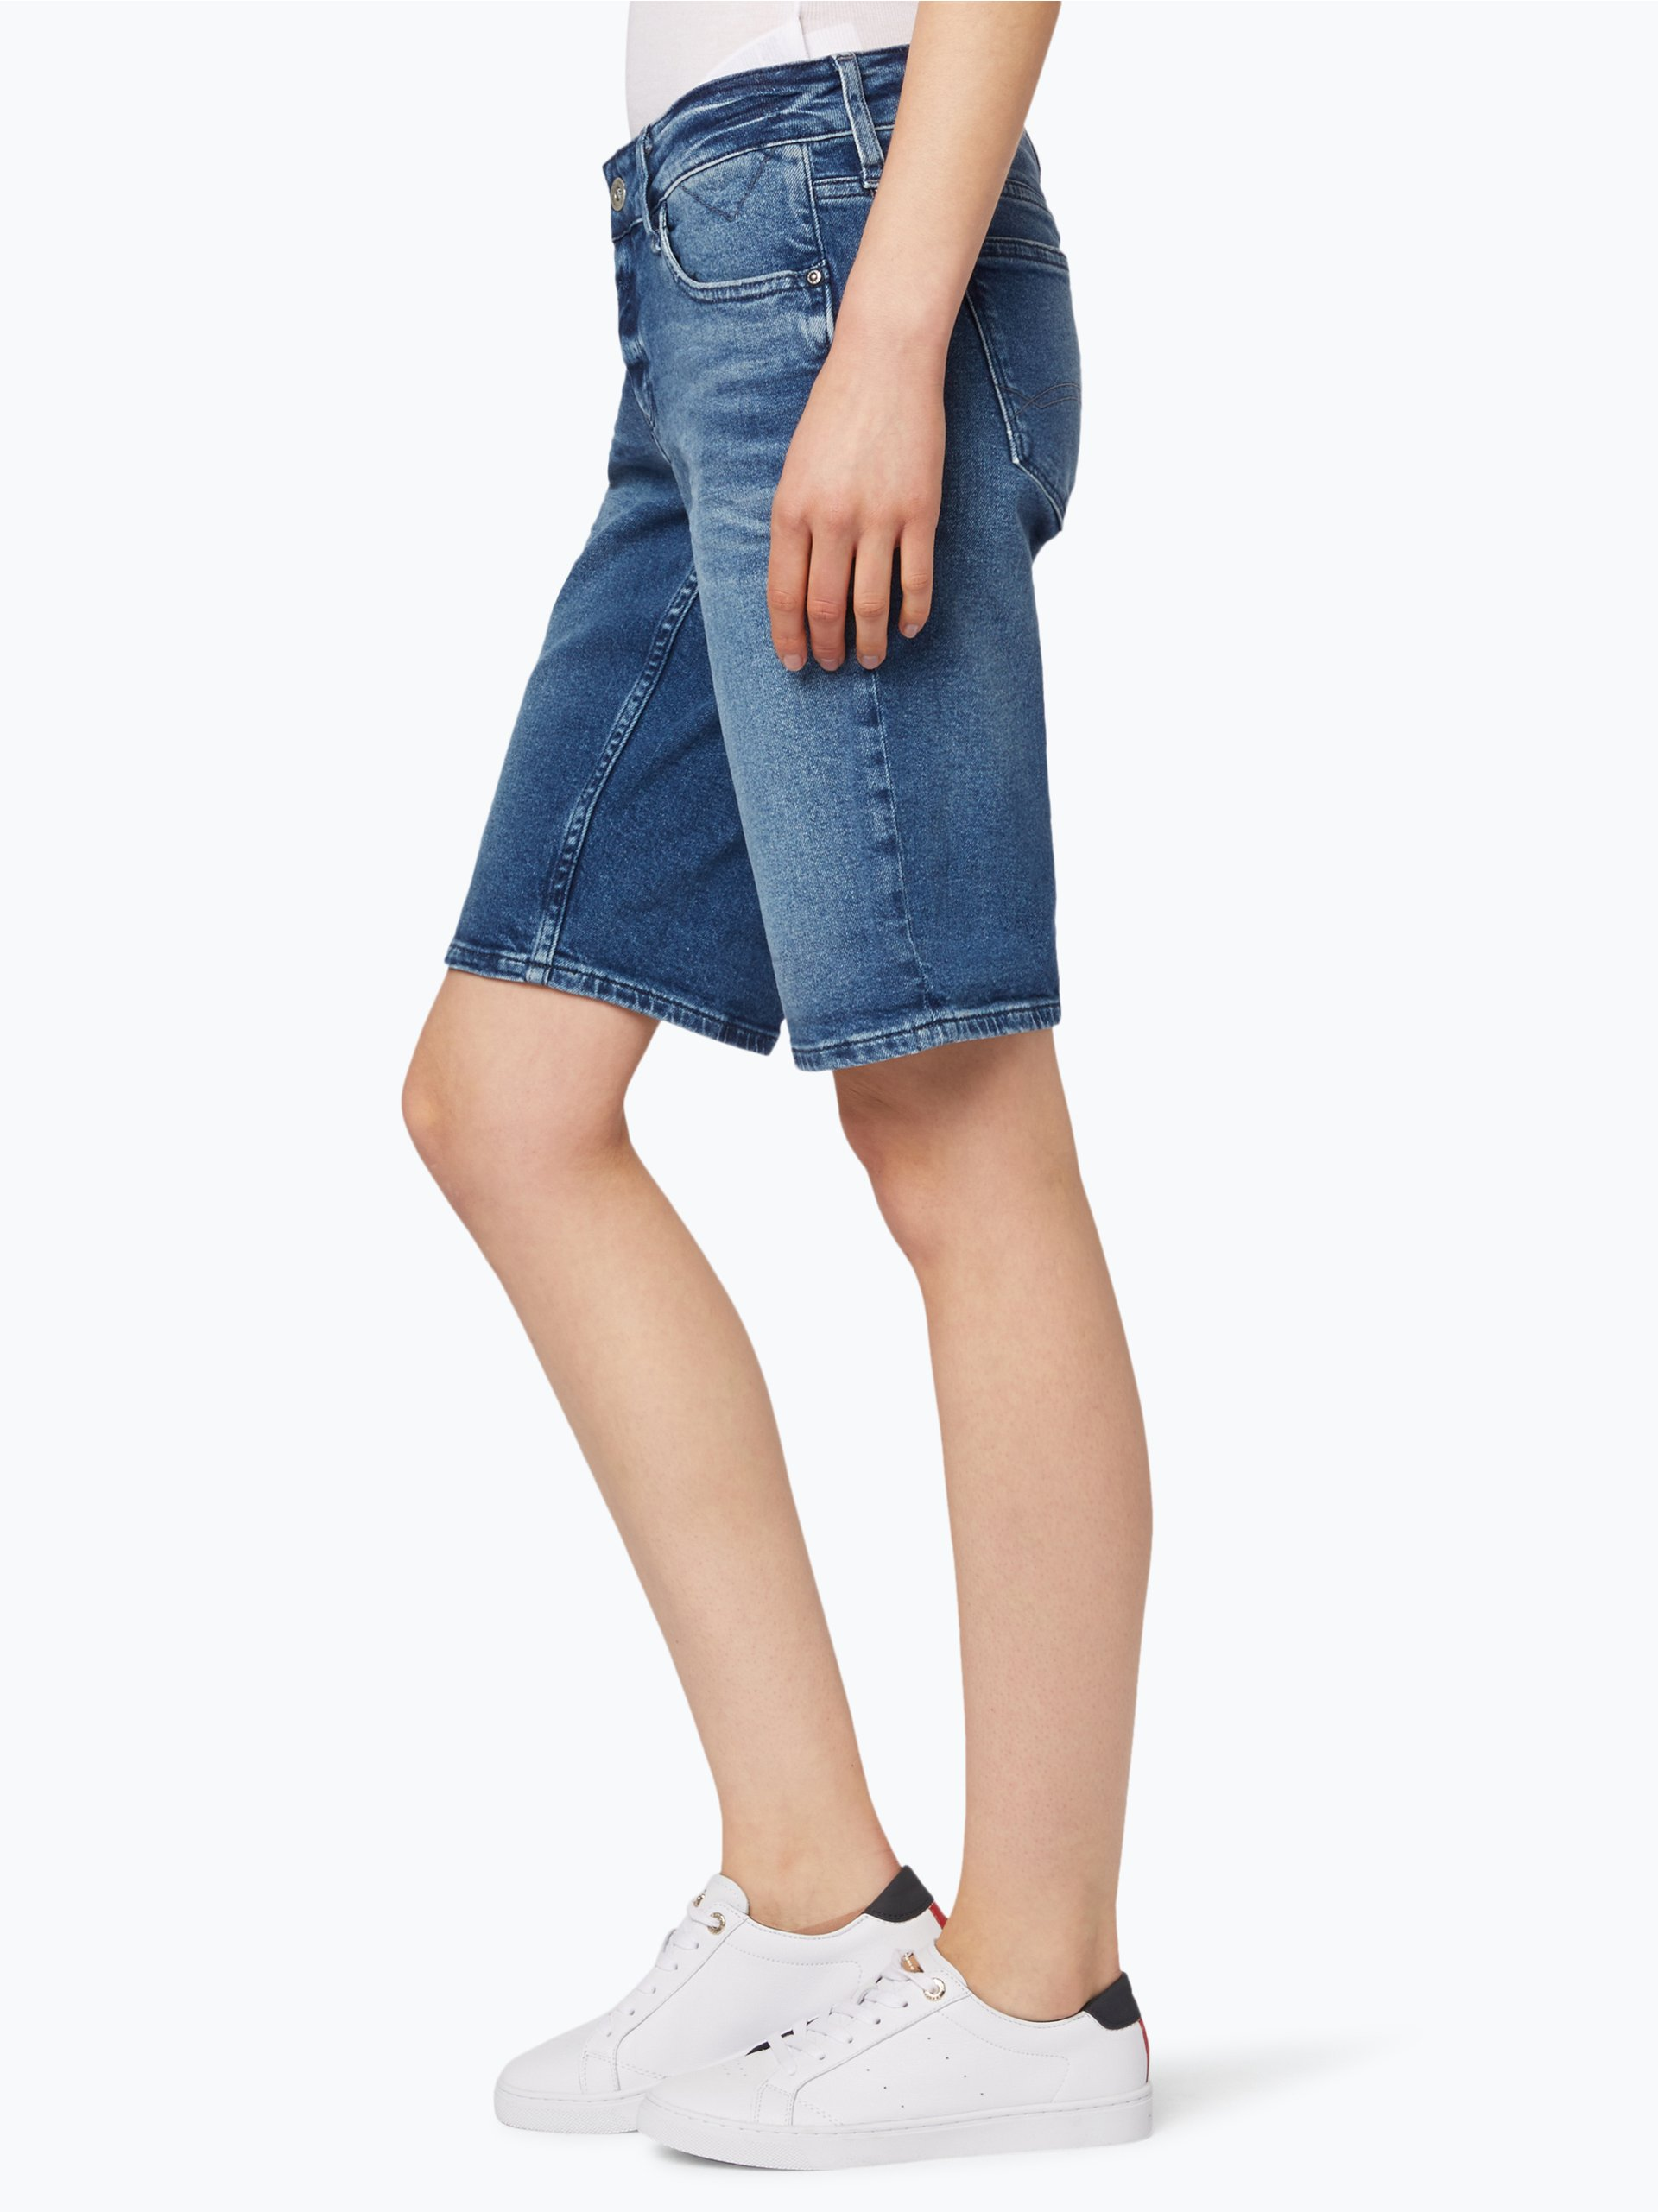 hilfiger denim damen shorts blau uni online kaufen peek und cloppenburg de. Black Bedroom Furniture Sets. Home Design Ideas